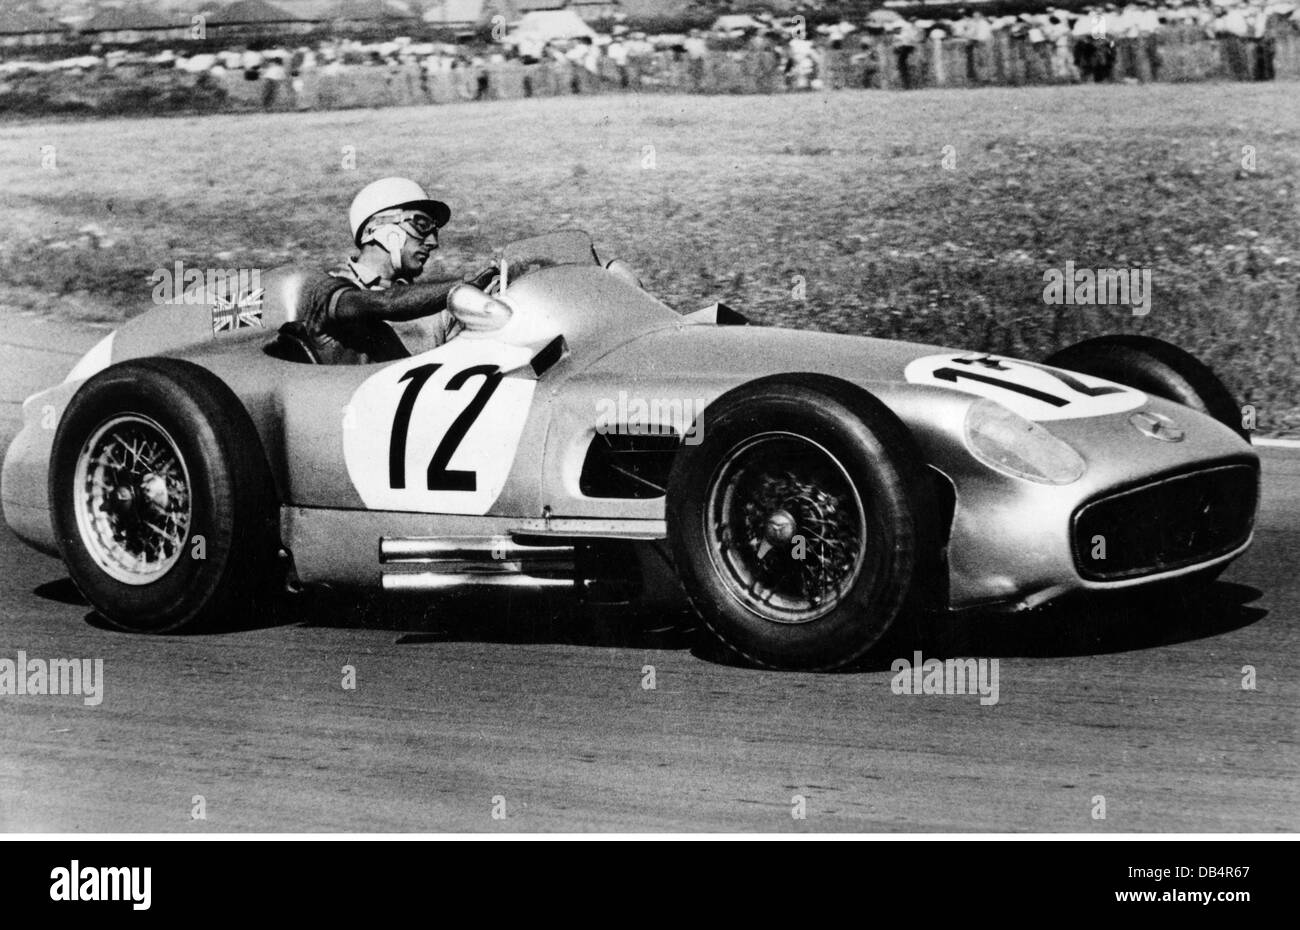 Sport car racing a mercedes benz during a race 1950s for Mercedes benz sports cars